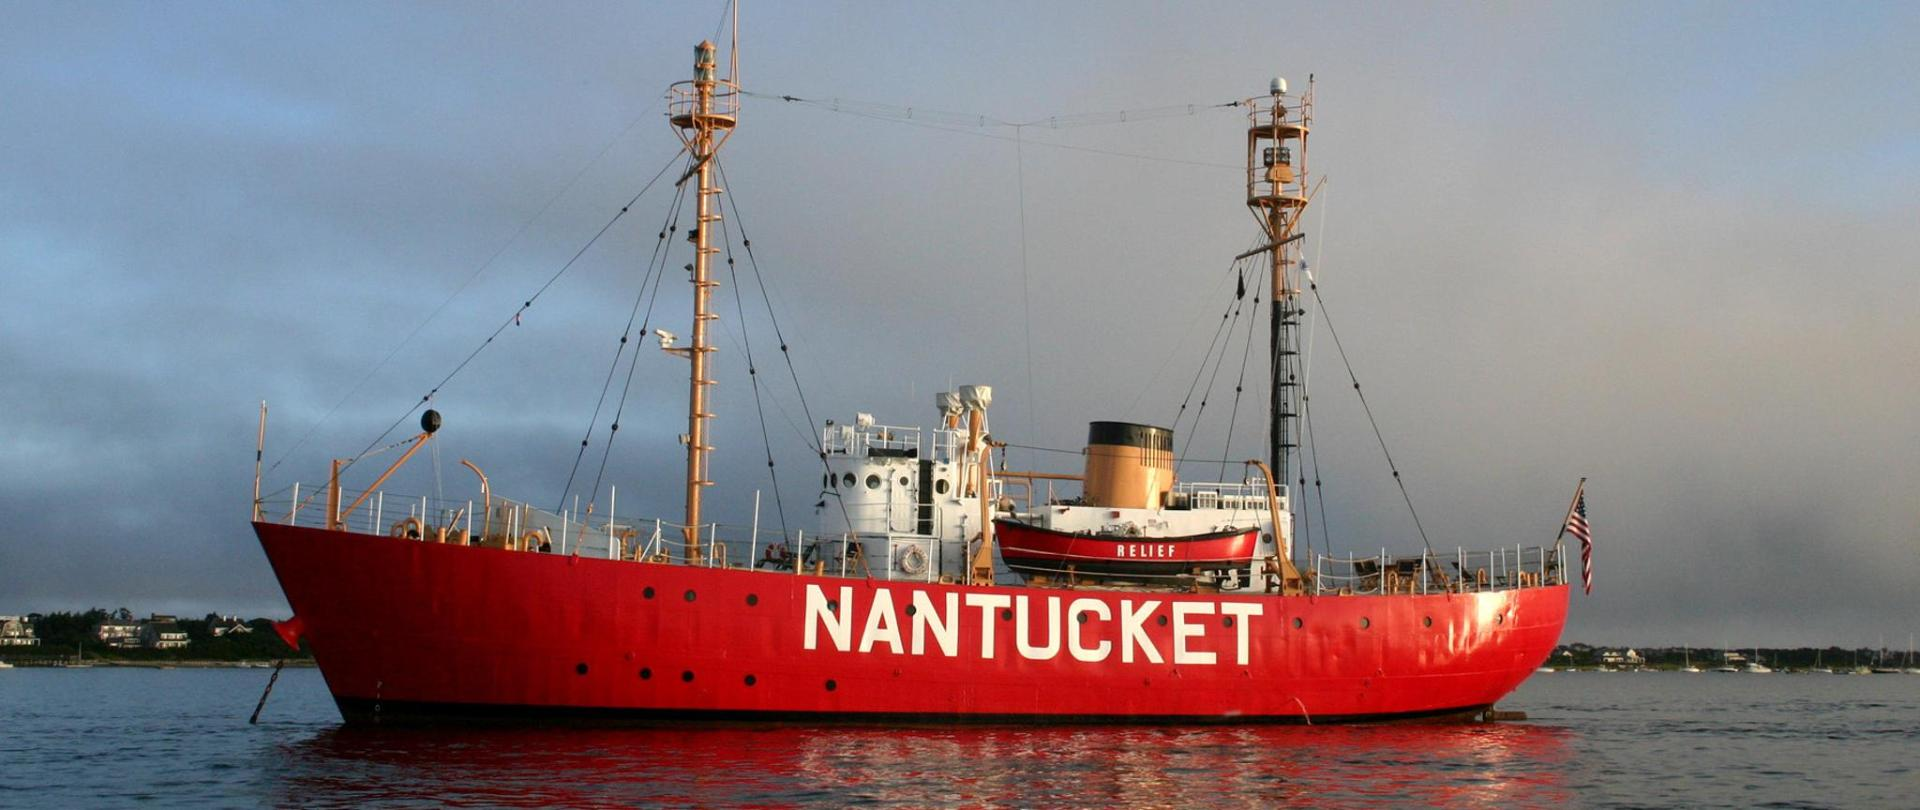 Nantucket Lightship.jpg